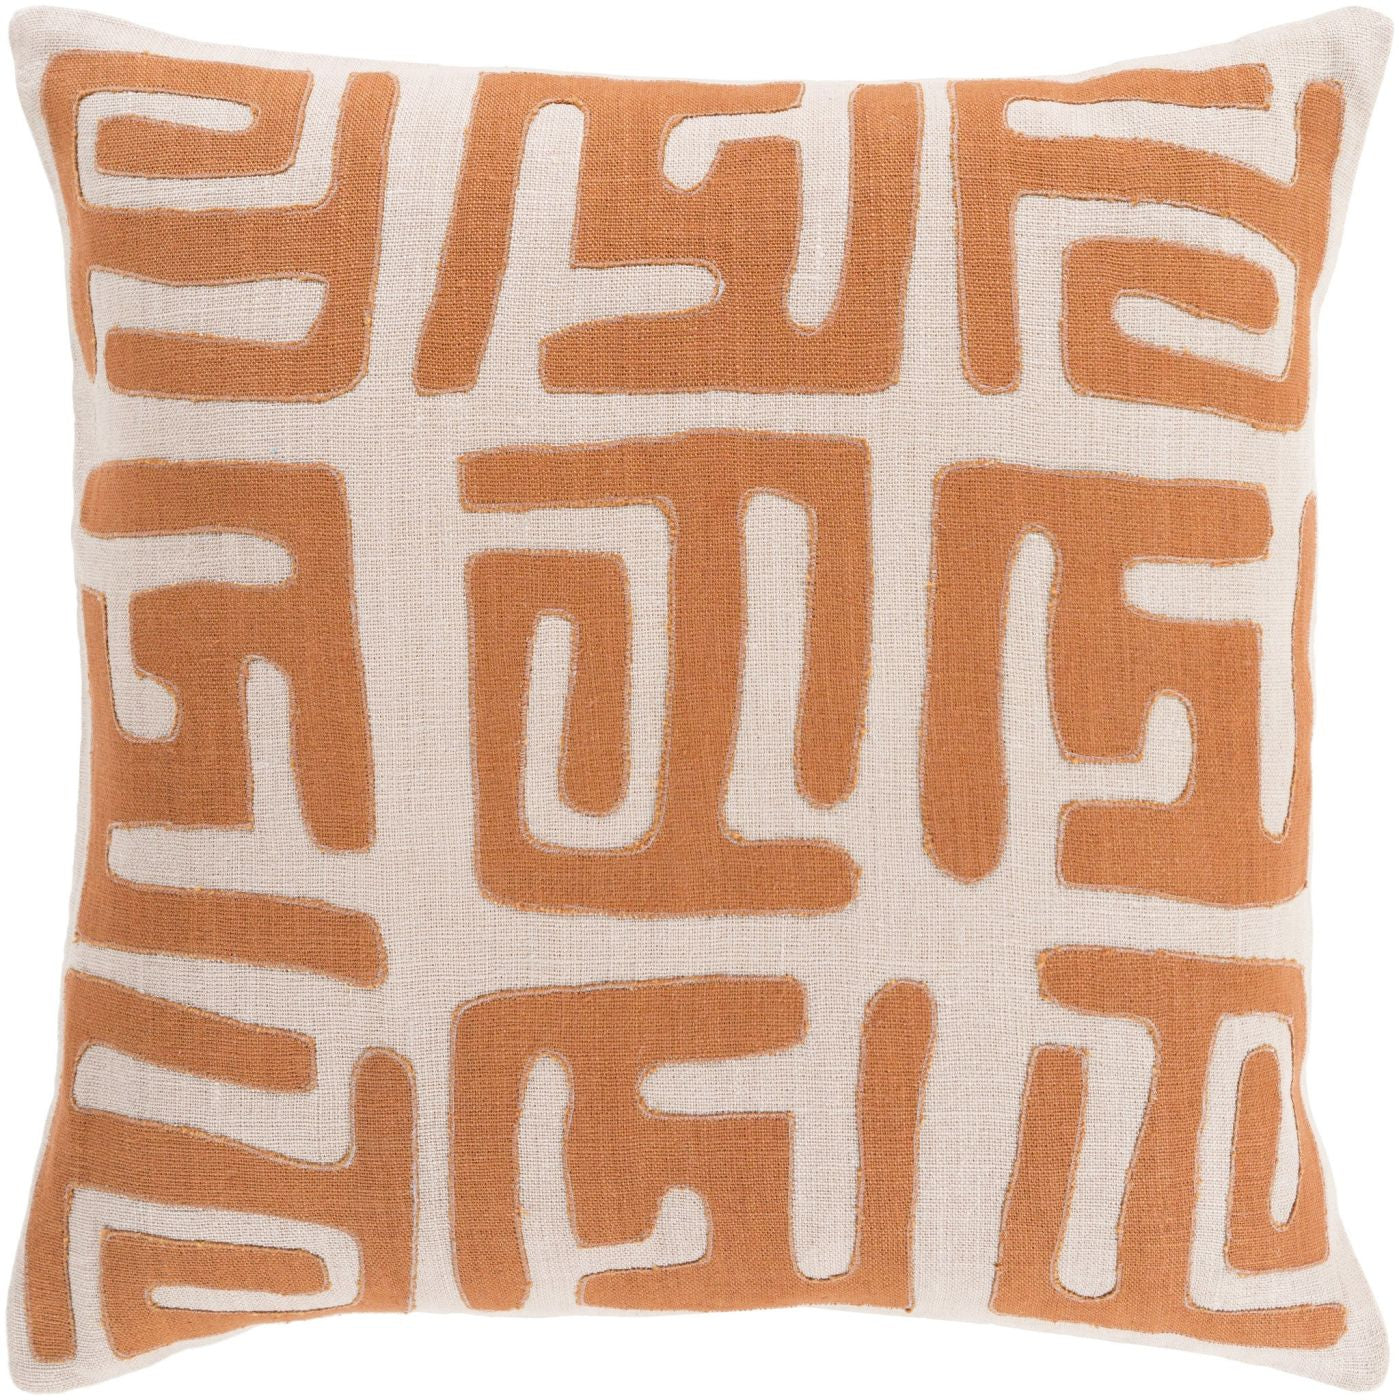 Brown Orange Throw Pillow : Surya Nairobi Throw Pillow Orange, Brown NRB004-1319D. Only USD87.60 at Contemporary Furniture ...